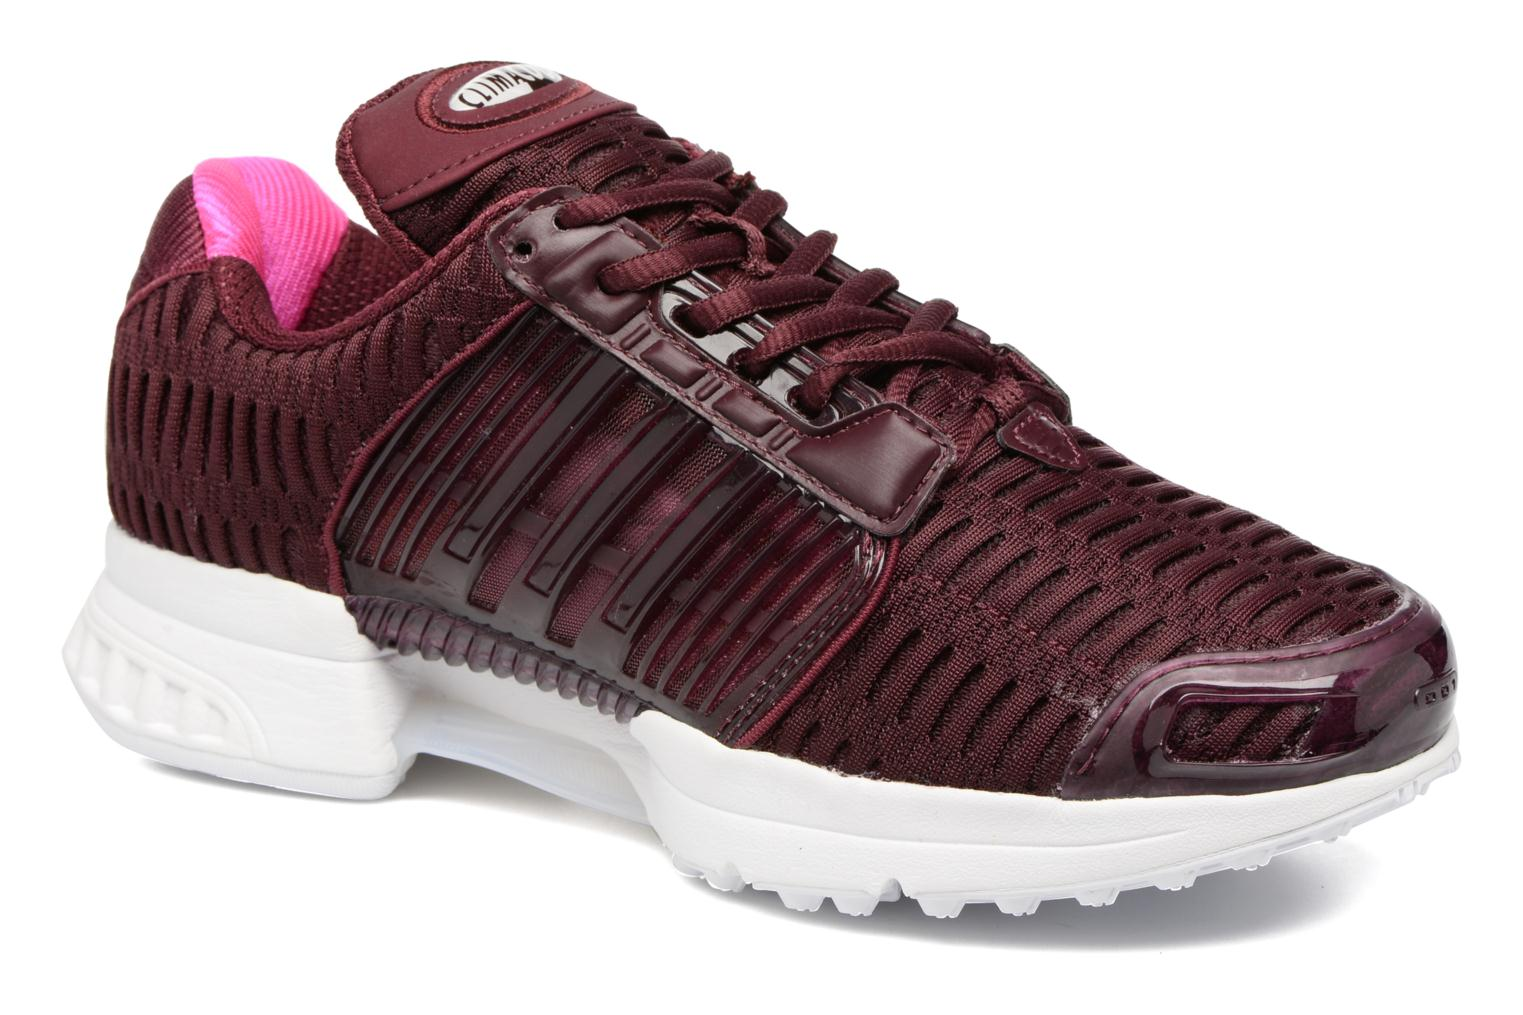 Baskets Originals 1 Adidas chez W Bordeaux Climacool Sarenza nB6wzwqUXx